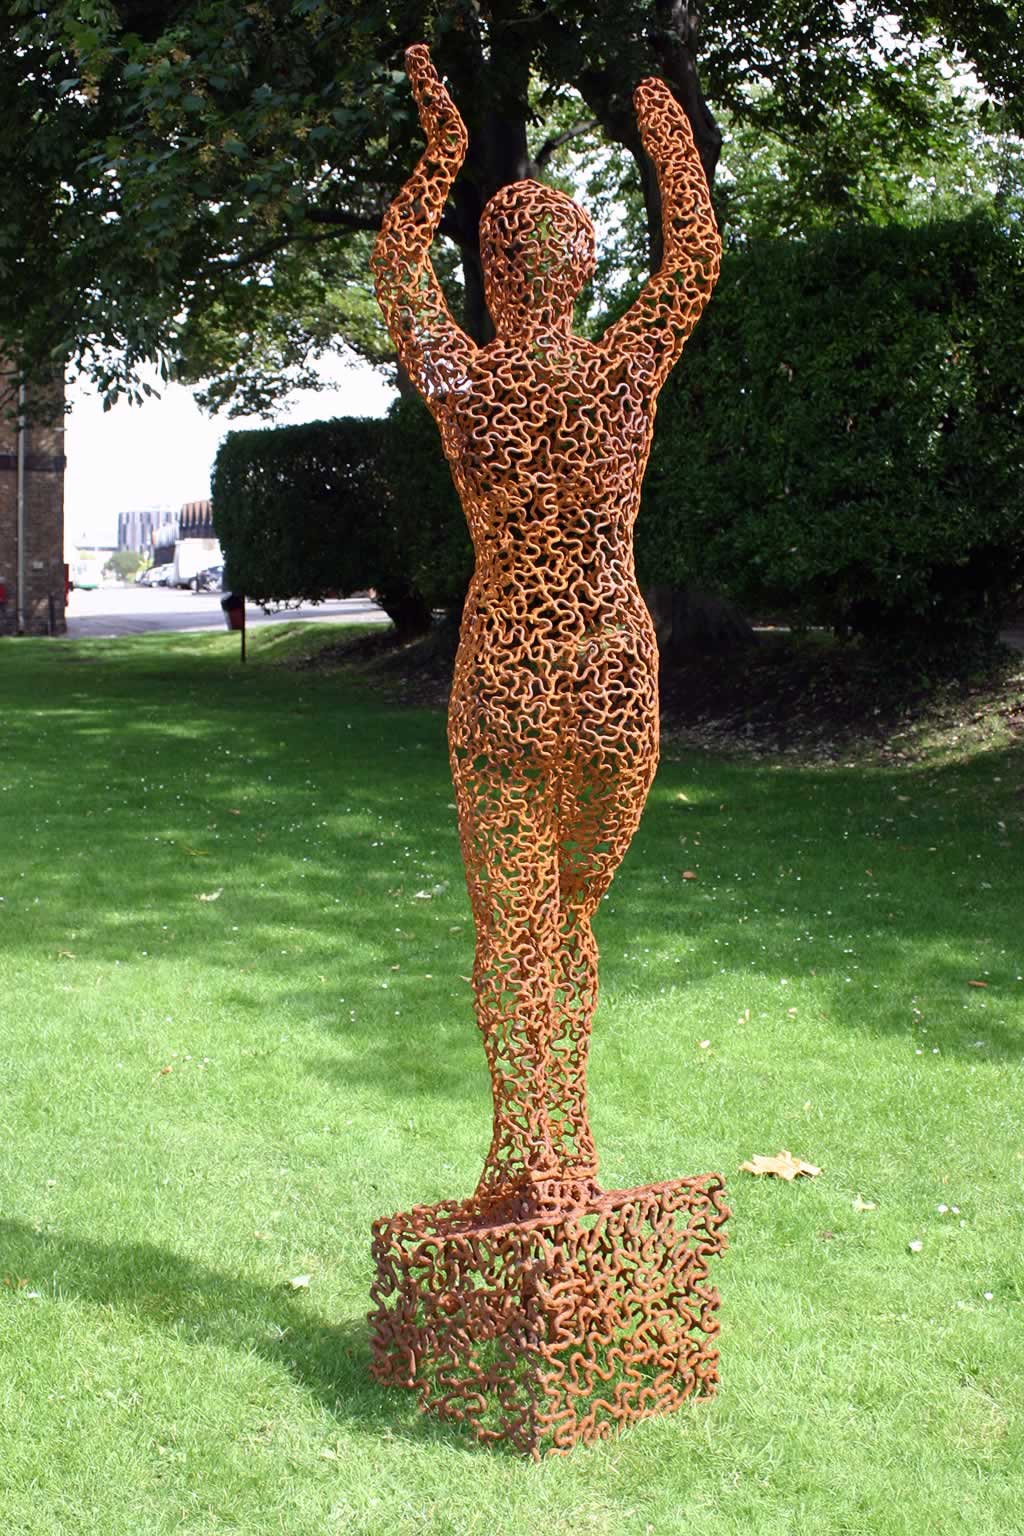 Eve (abstract figurative sculpture) by sculptor Ian Campbell-Briggs